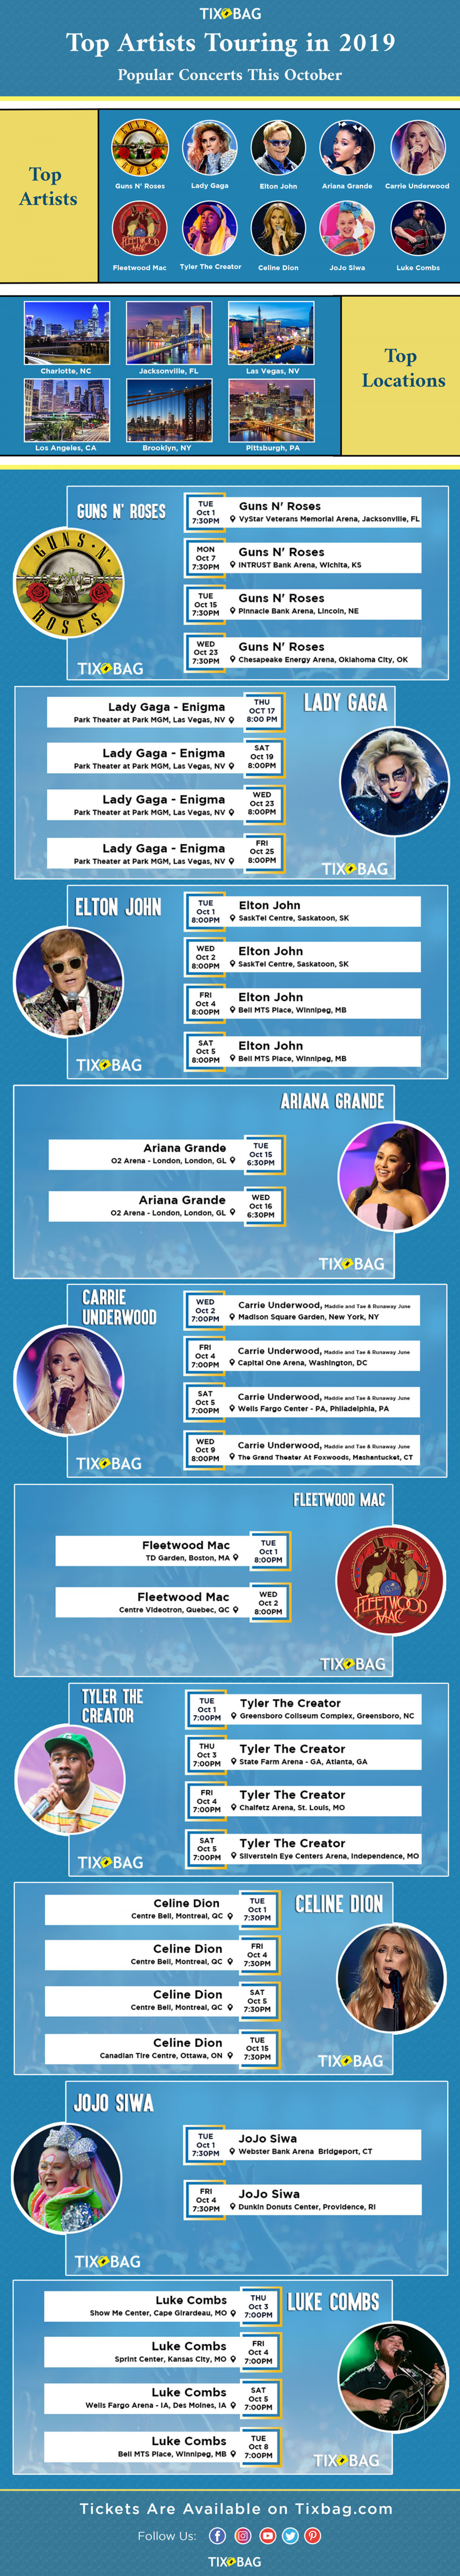 Concert Tours 2019 : Top Concert Artists Touring of October 2019 Infographic